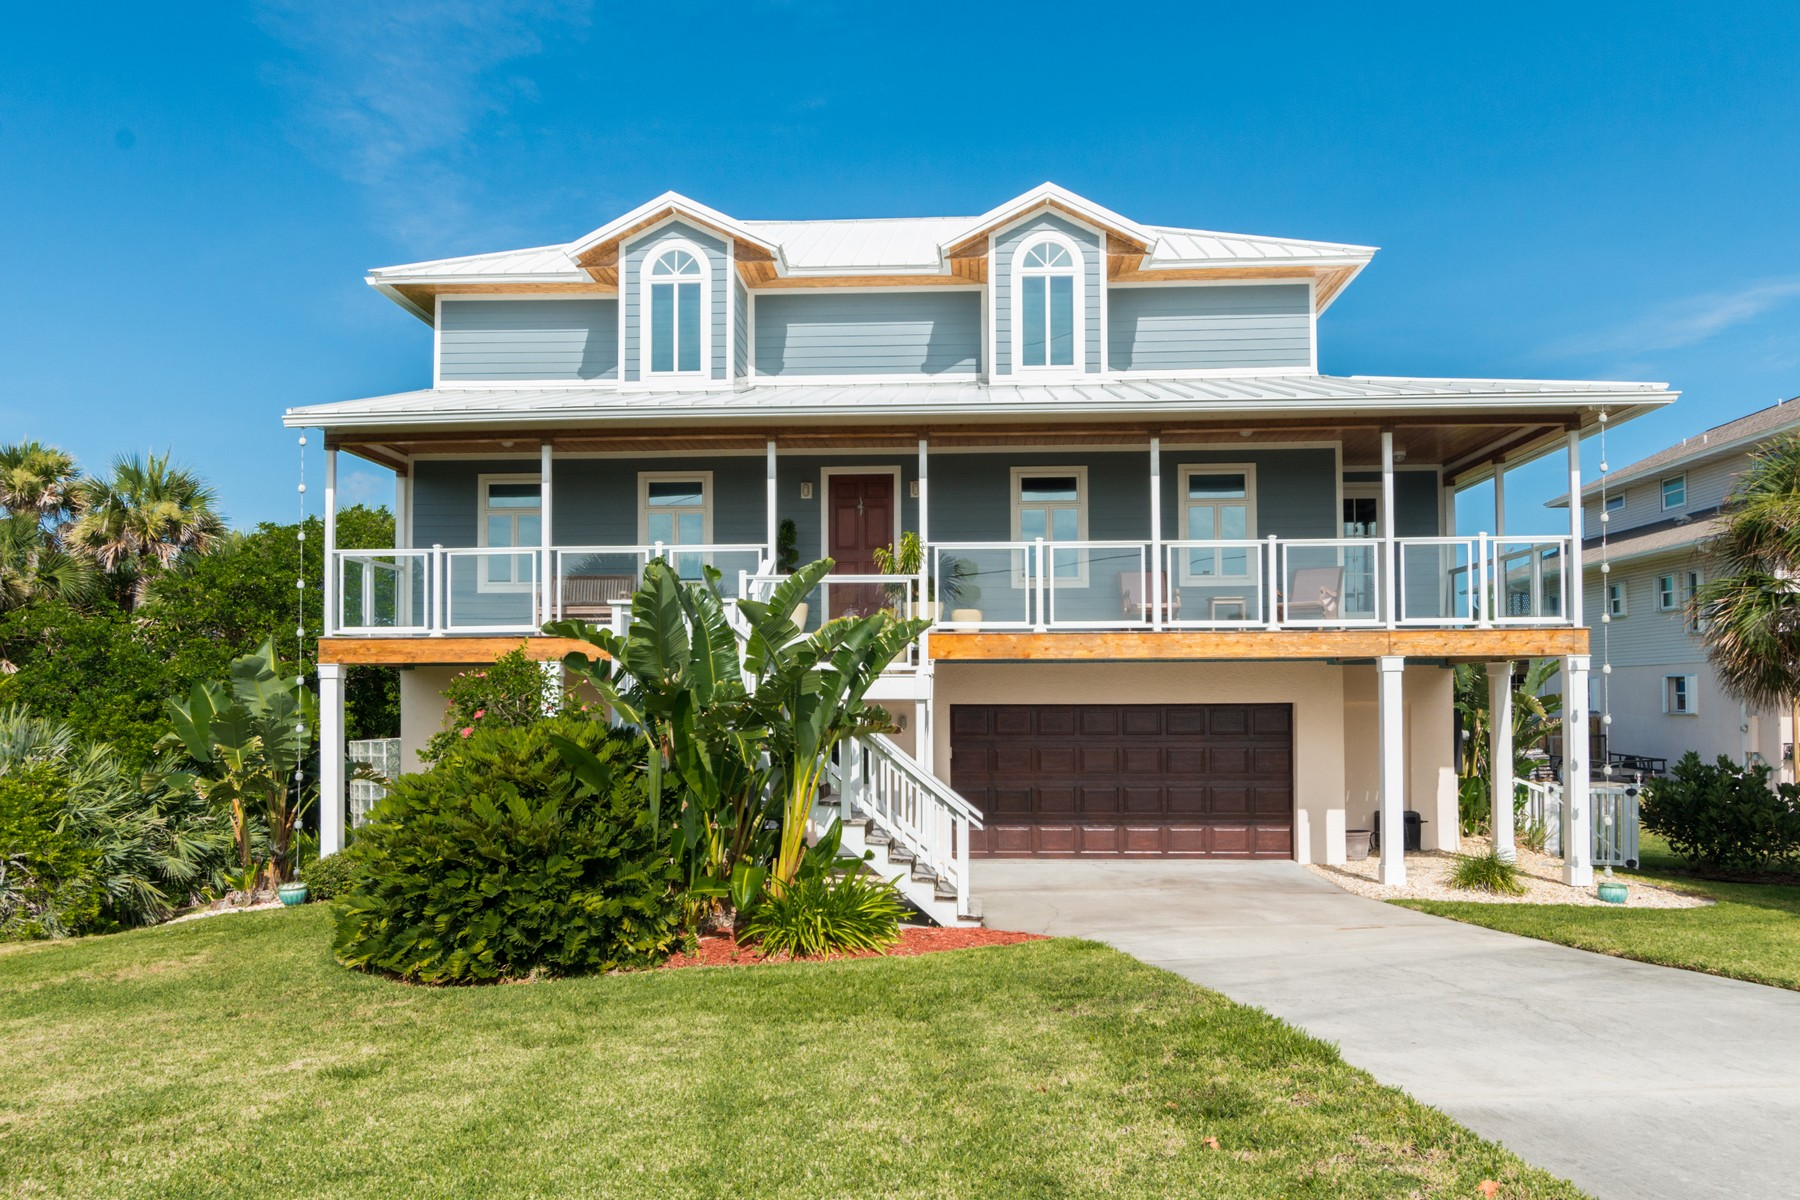 Single Family Home for Sale at Exquisite 3 Story Riverfront Home 8360 Highway A1A Melbourne Beach, Florida, 32951 United States